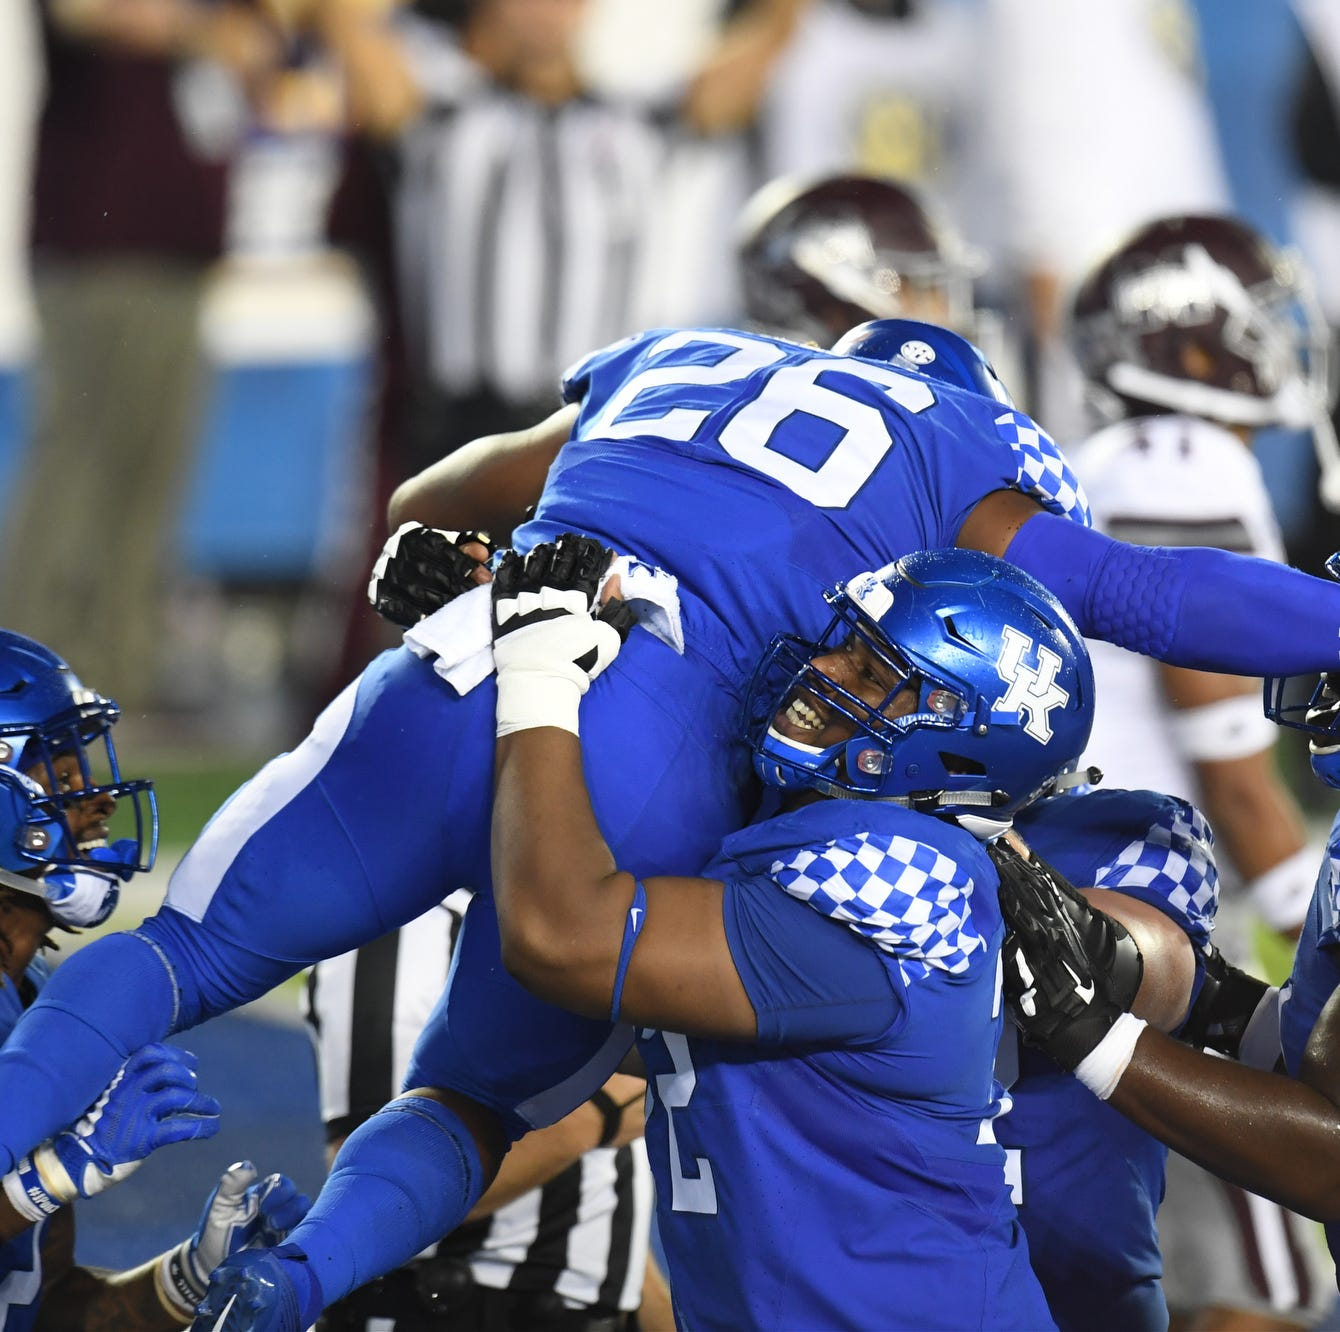 Kentucky football ranked in top 25 for the first time in over a decade